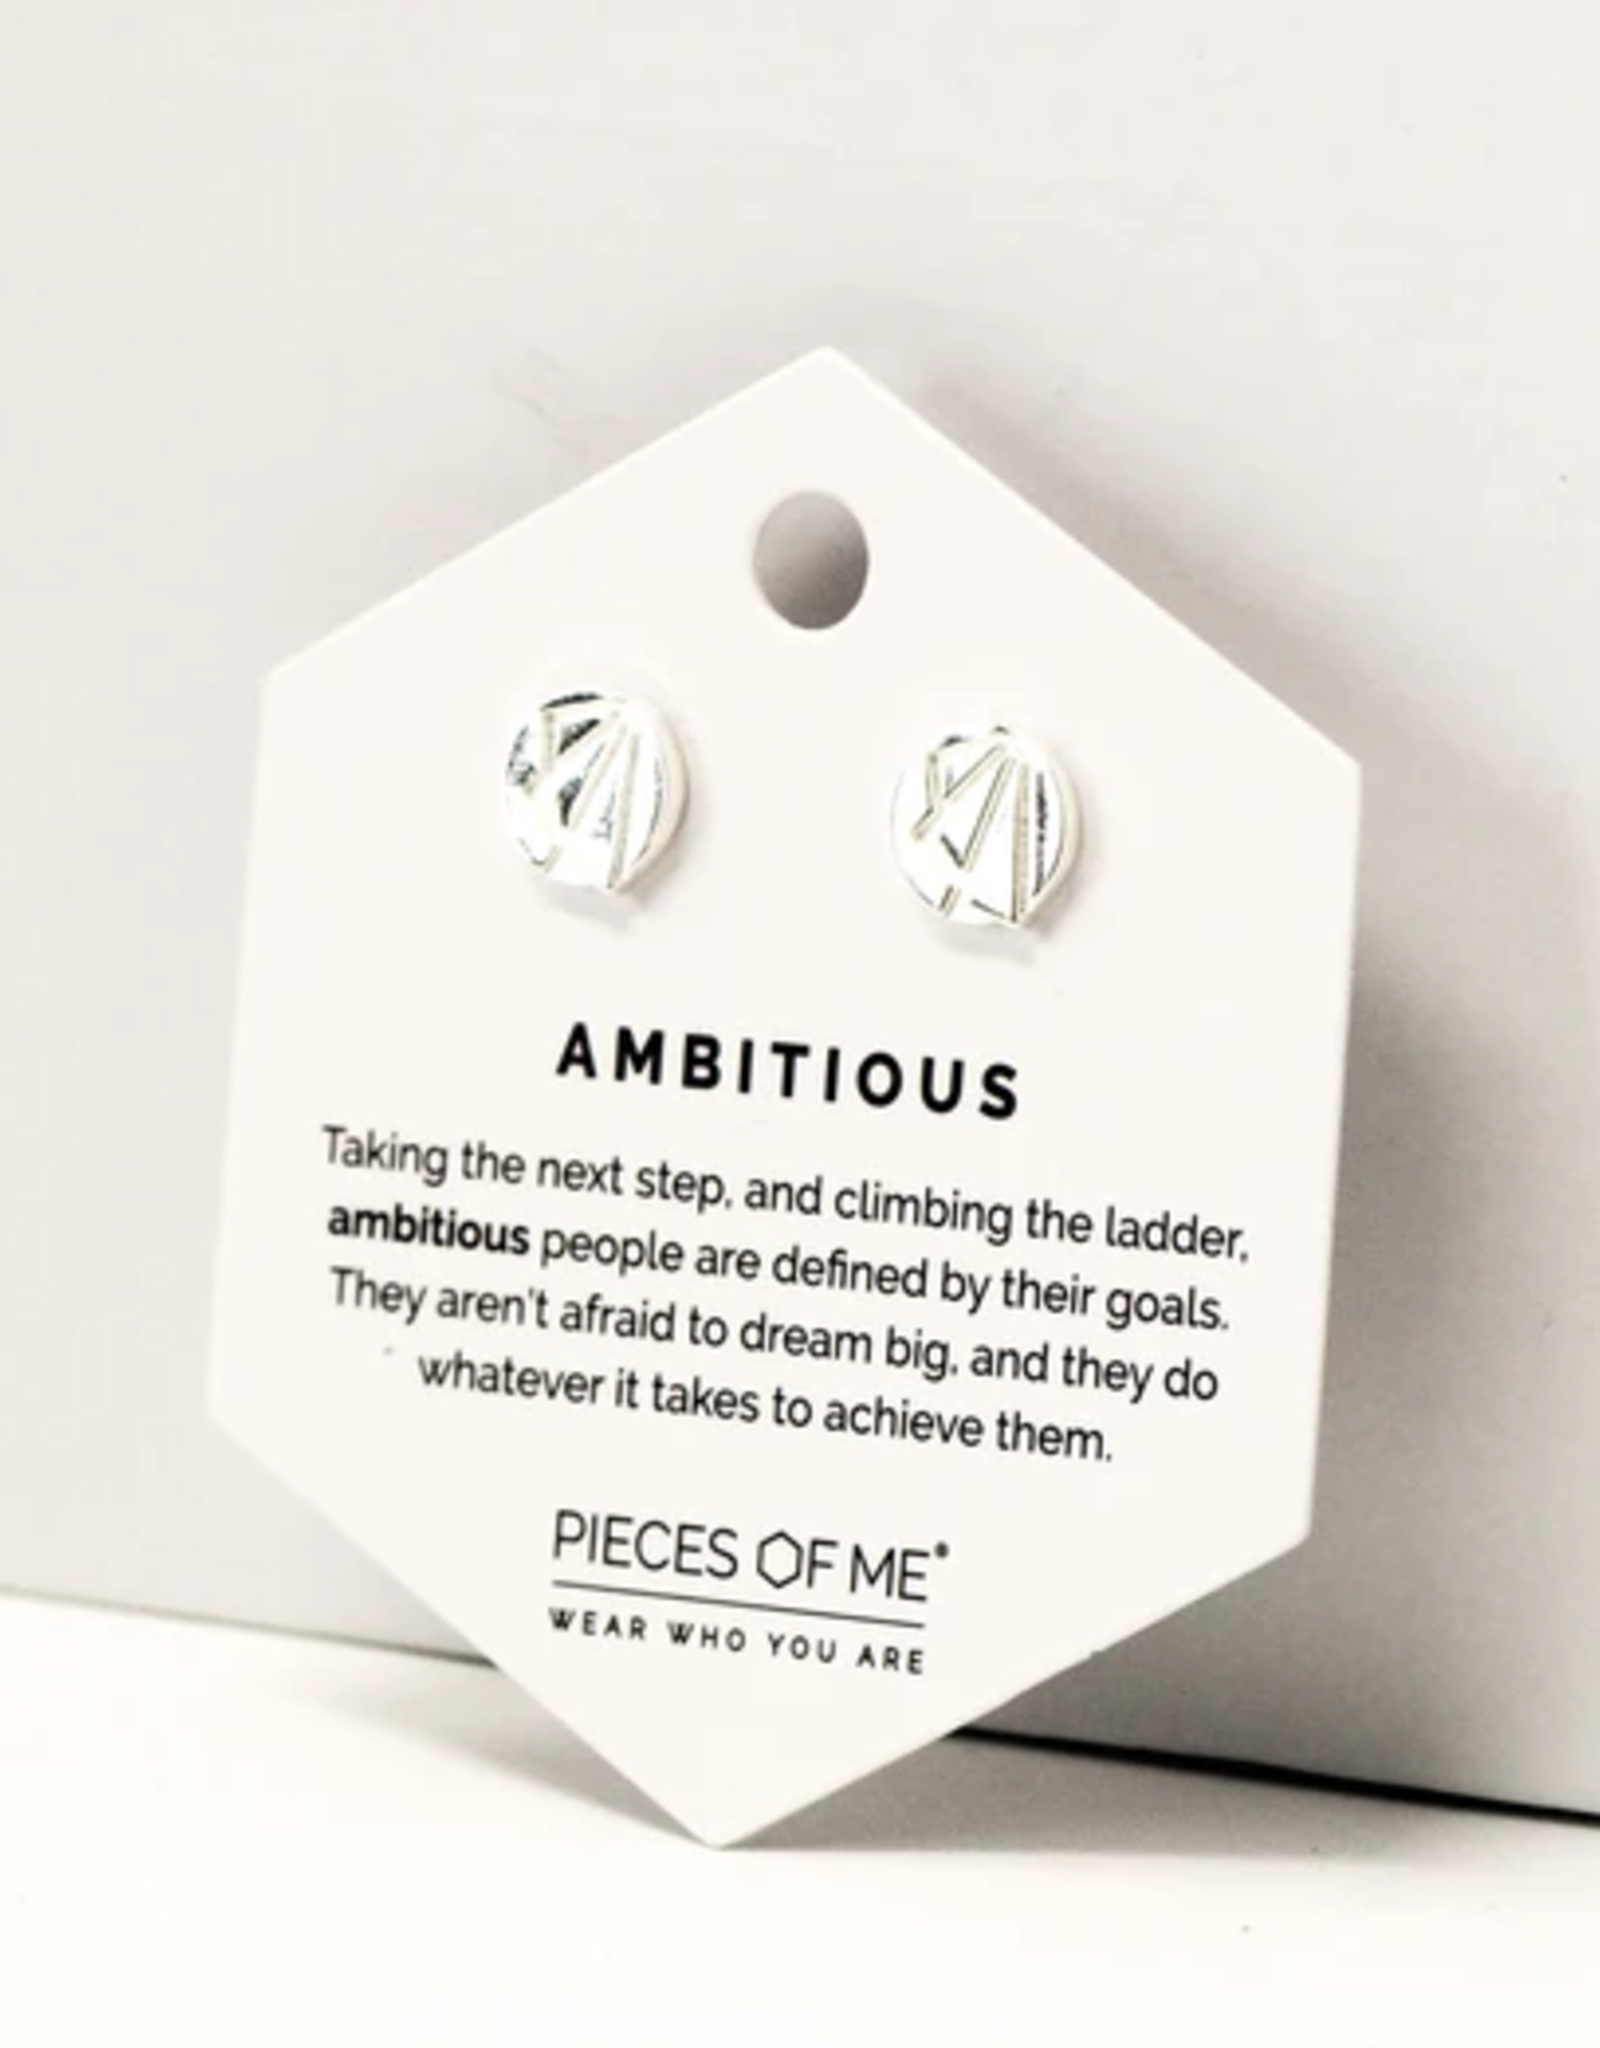 Pieces of Me Ambitious Earrings - Silver